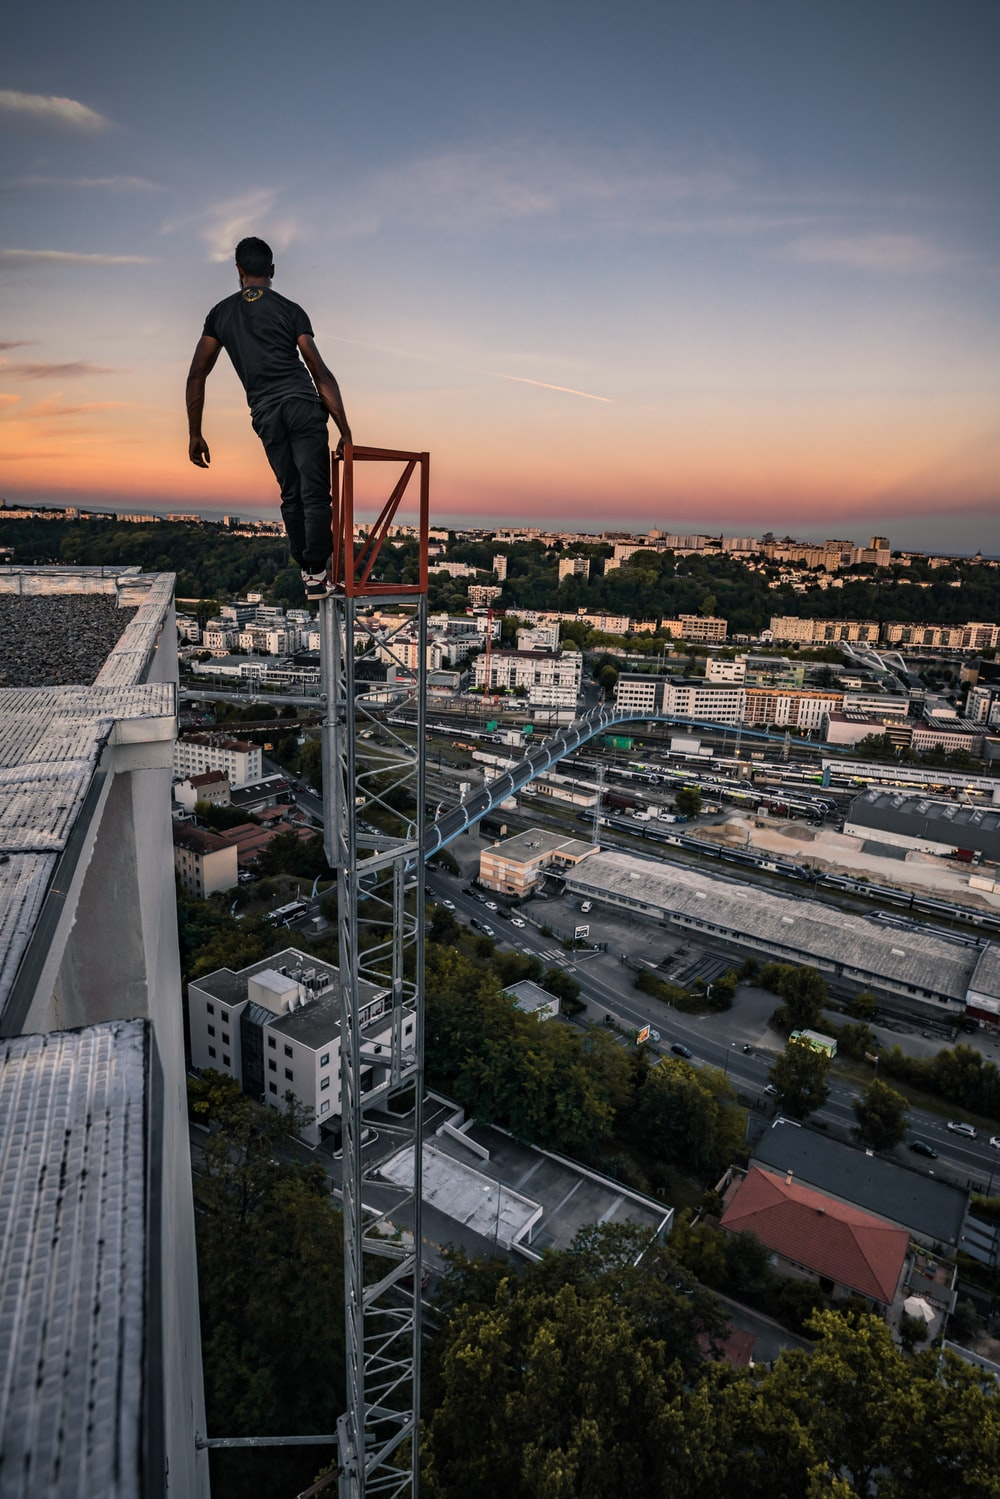 man in black jacket and pants standing on top of building during sunset